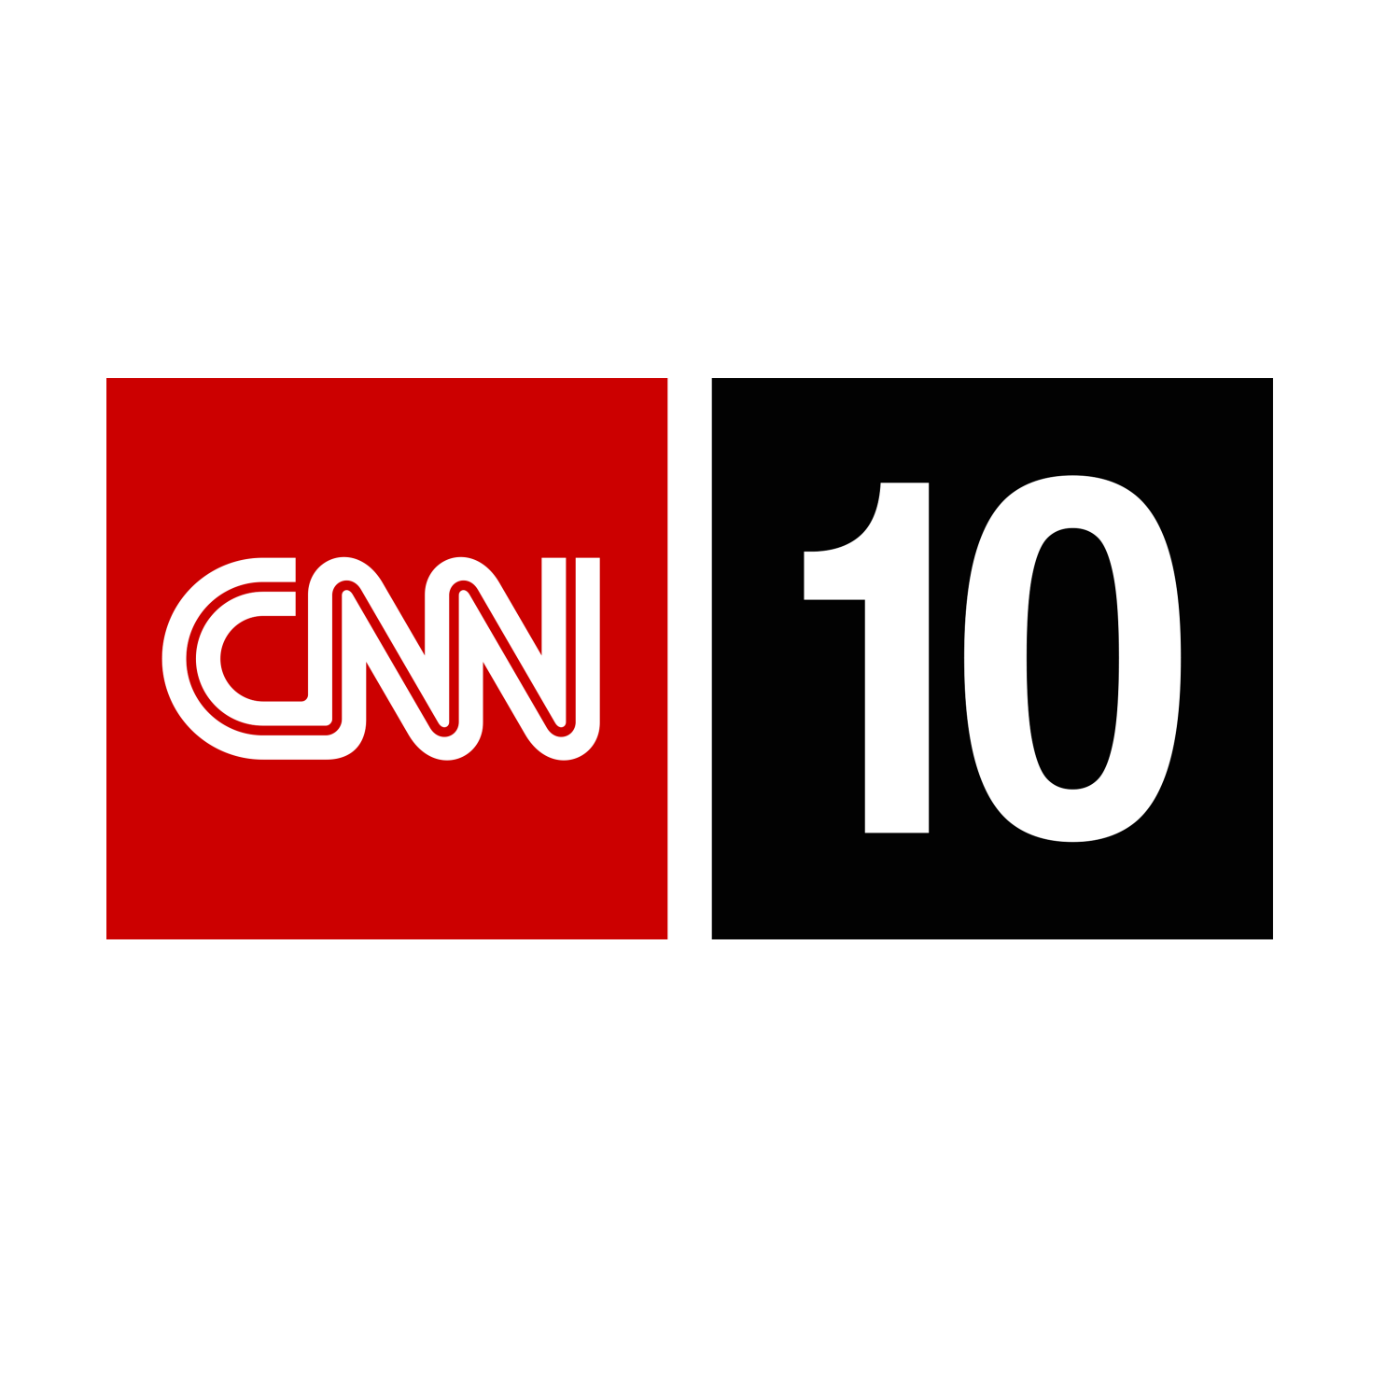 CNN Student News - May 1, 2013